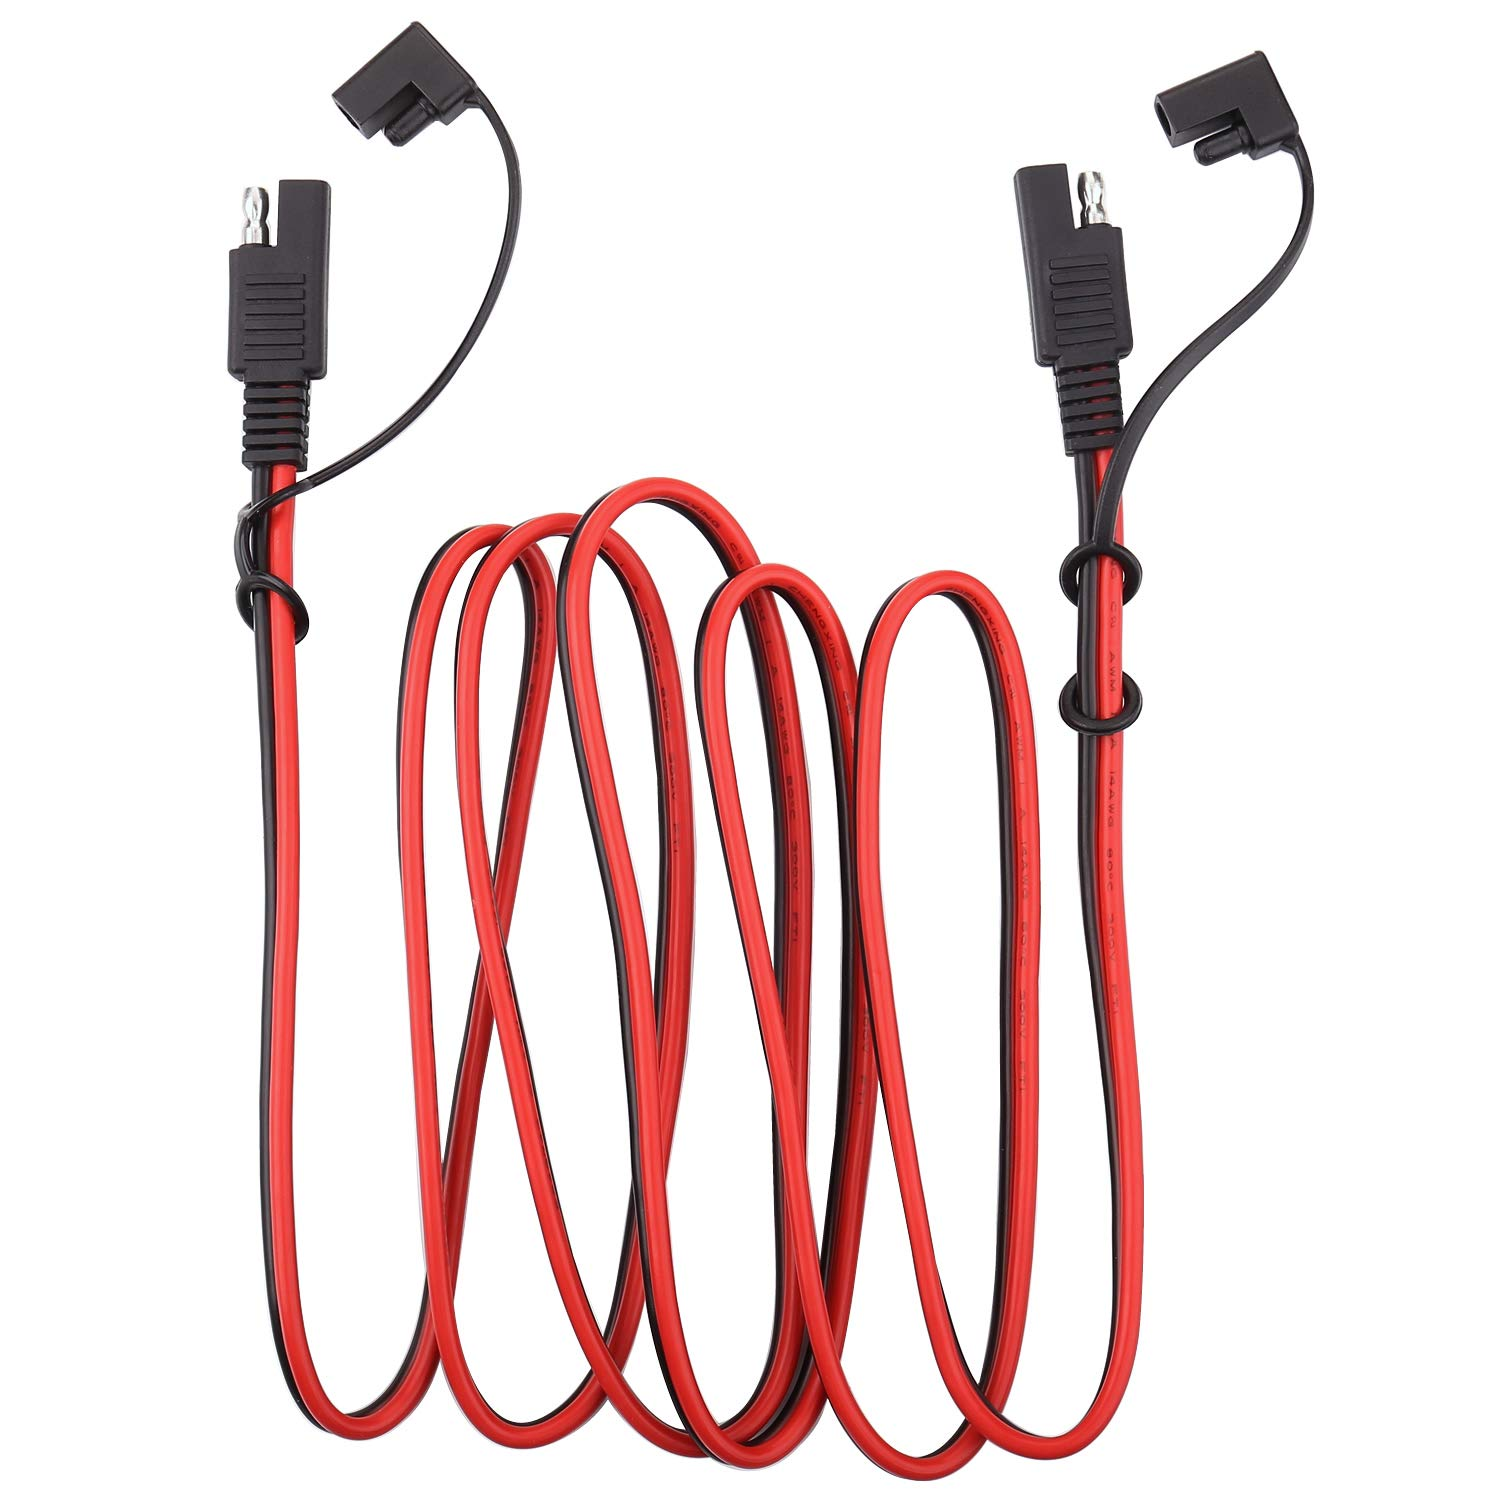 iGreely SAE Power Automotive Extension Cable SAE to SAE Extension Cable Quick Disconnect Wire Harness SAE Connector 14AWG 4M/13FT by iGreely